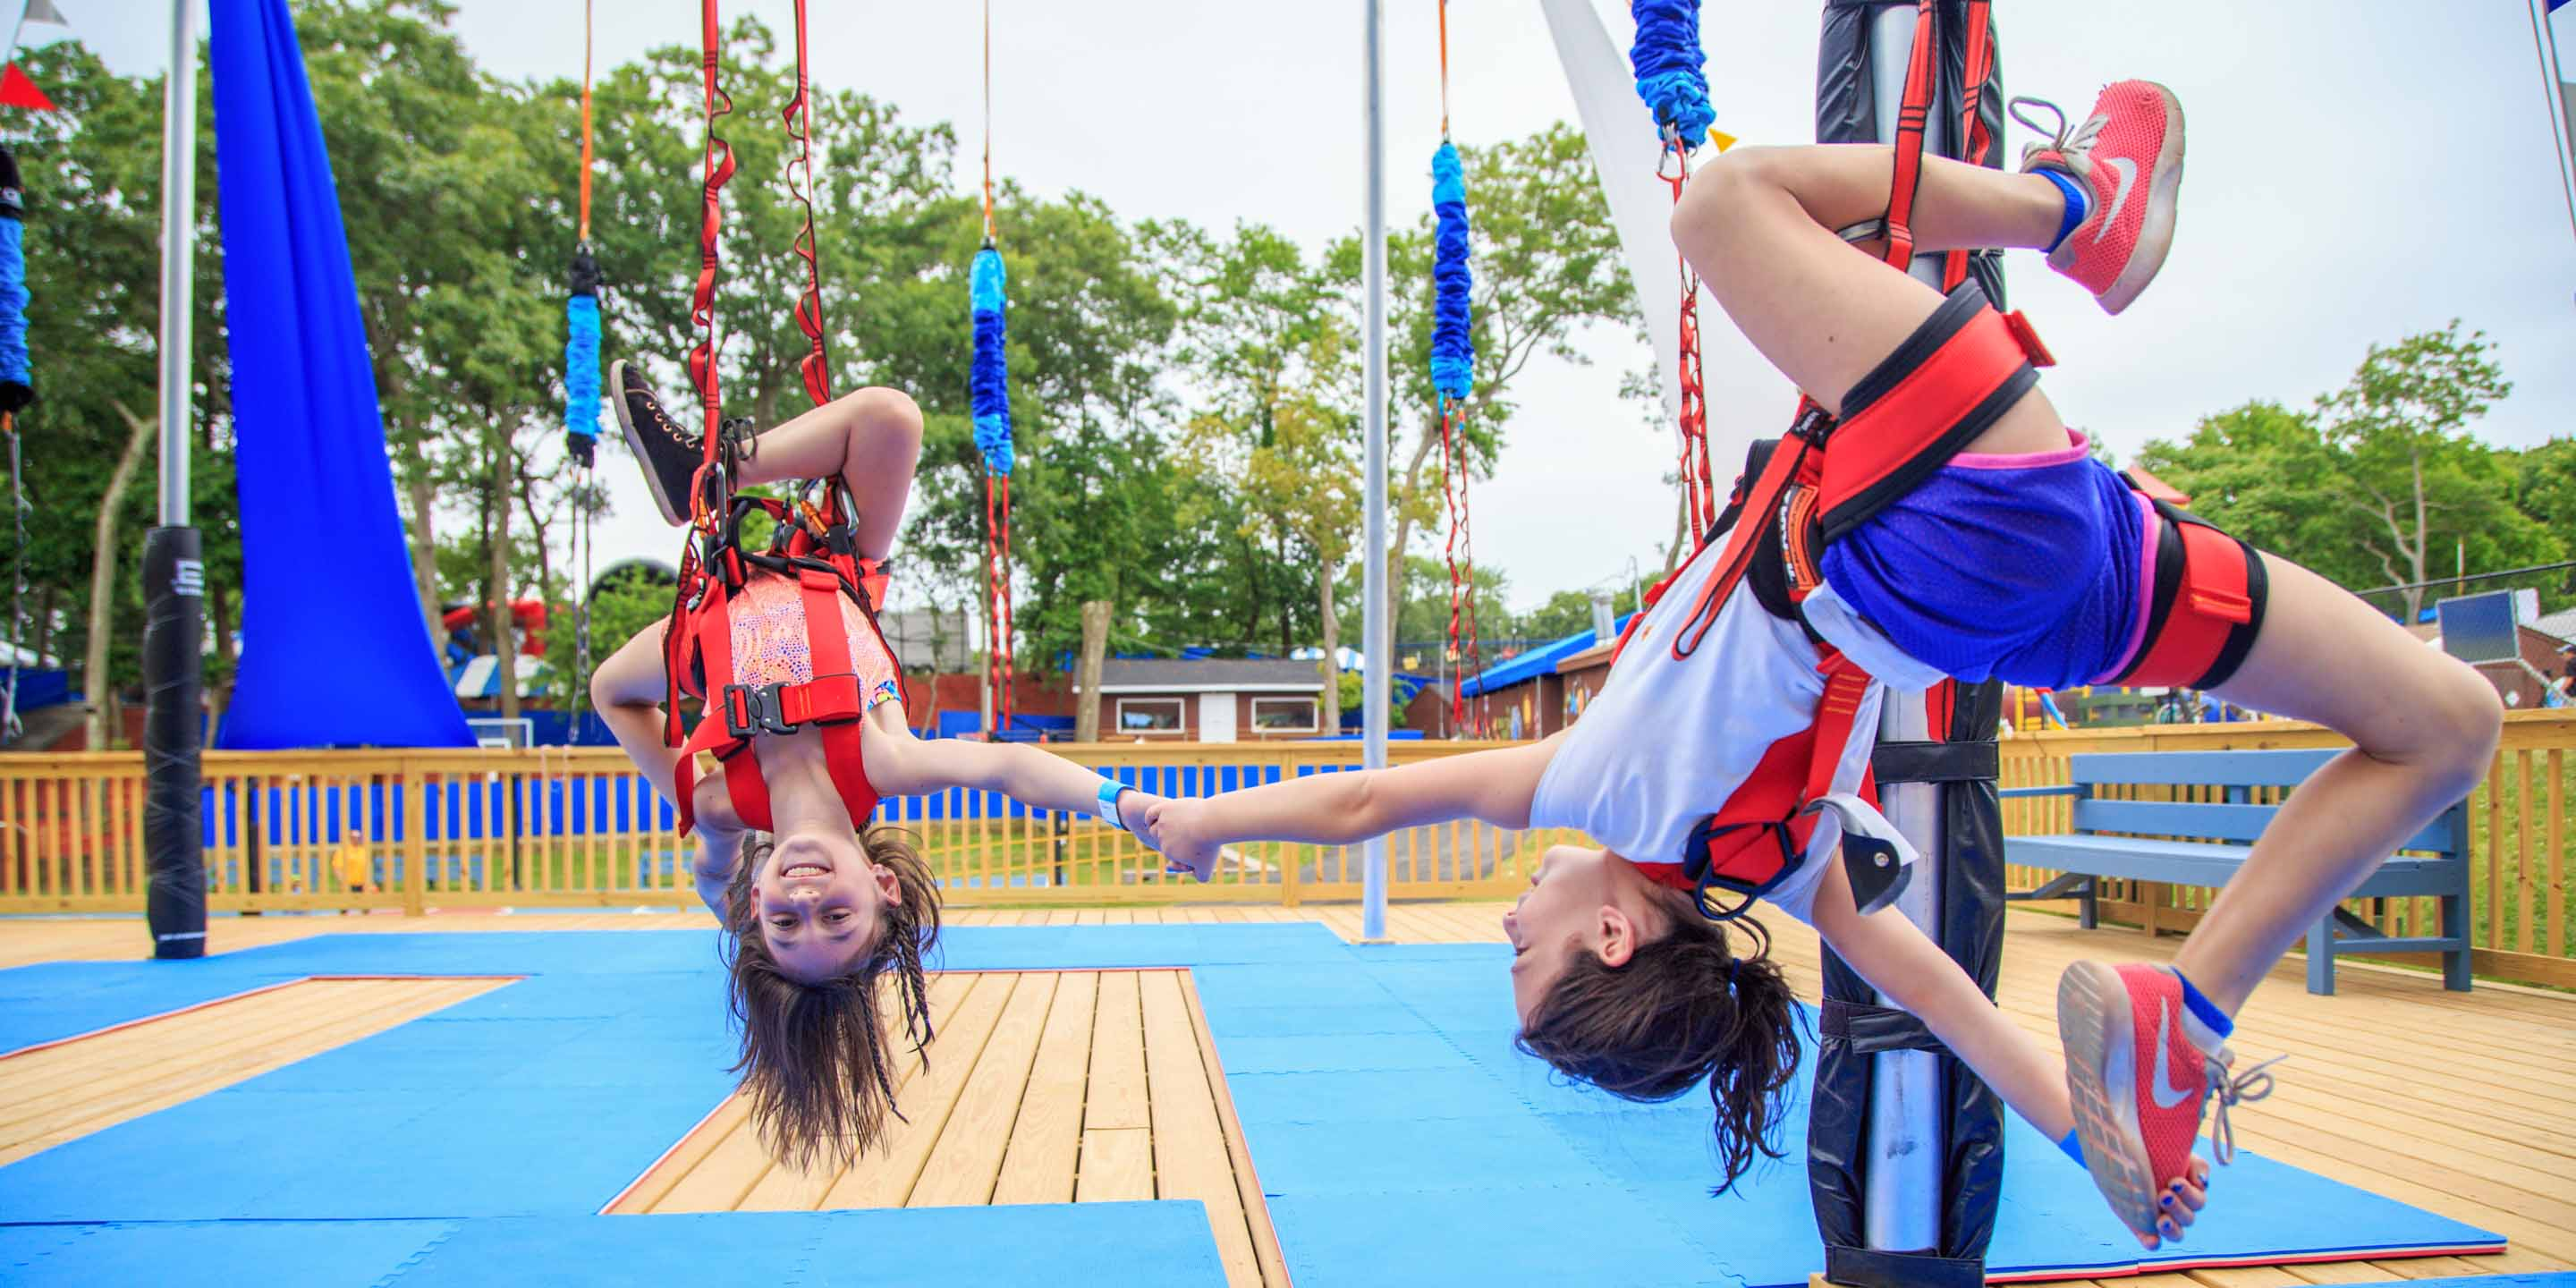 Girls on swings upside down